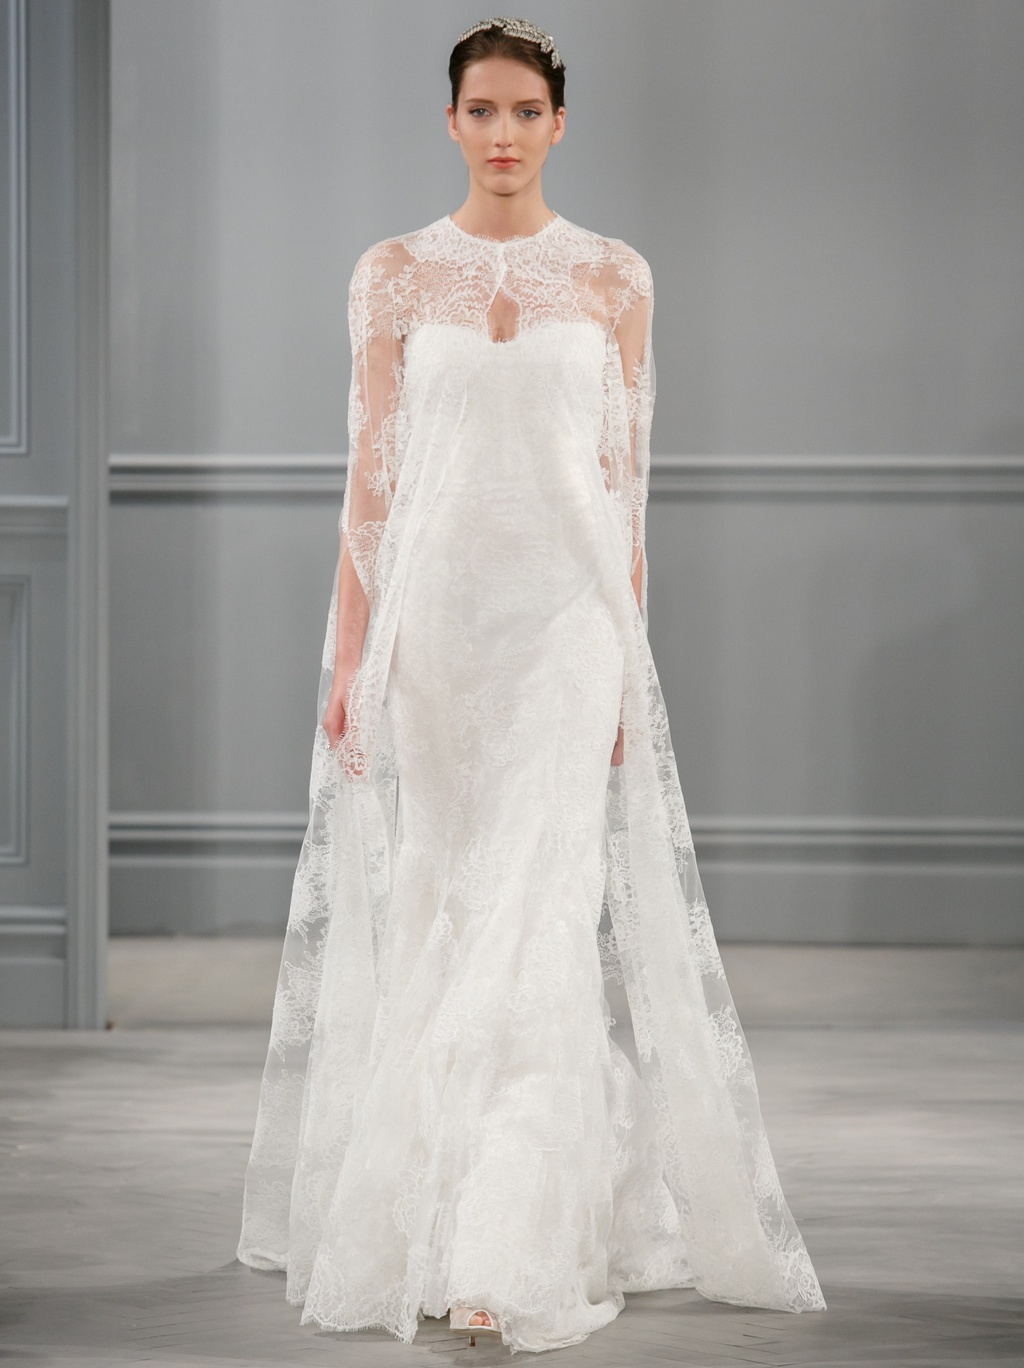 Spring-2014-wedding-dress-monique-lhuillier-bridal-sandrine.full